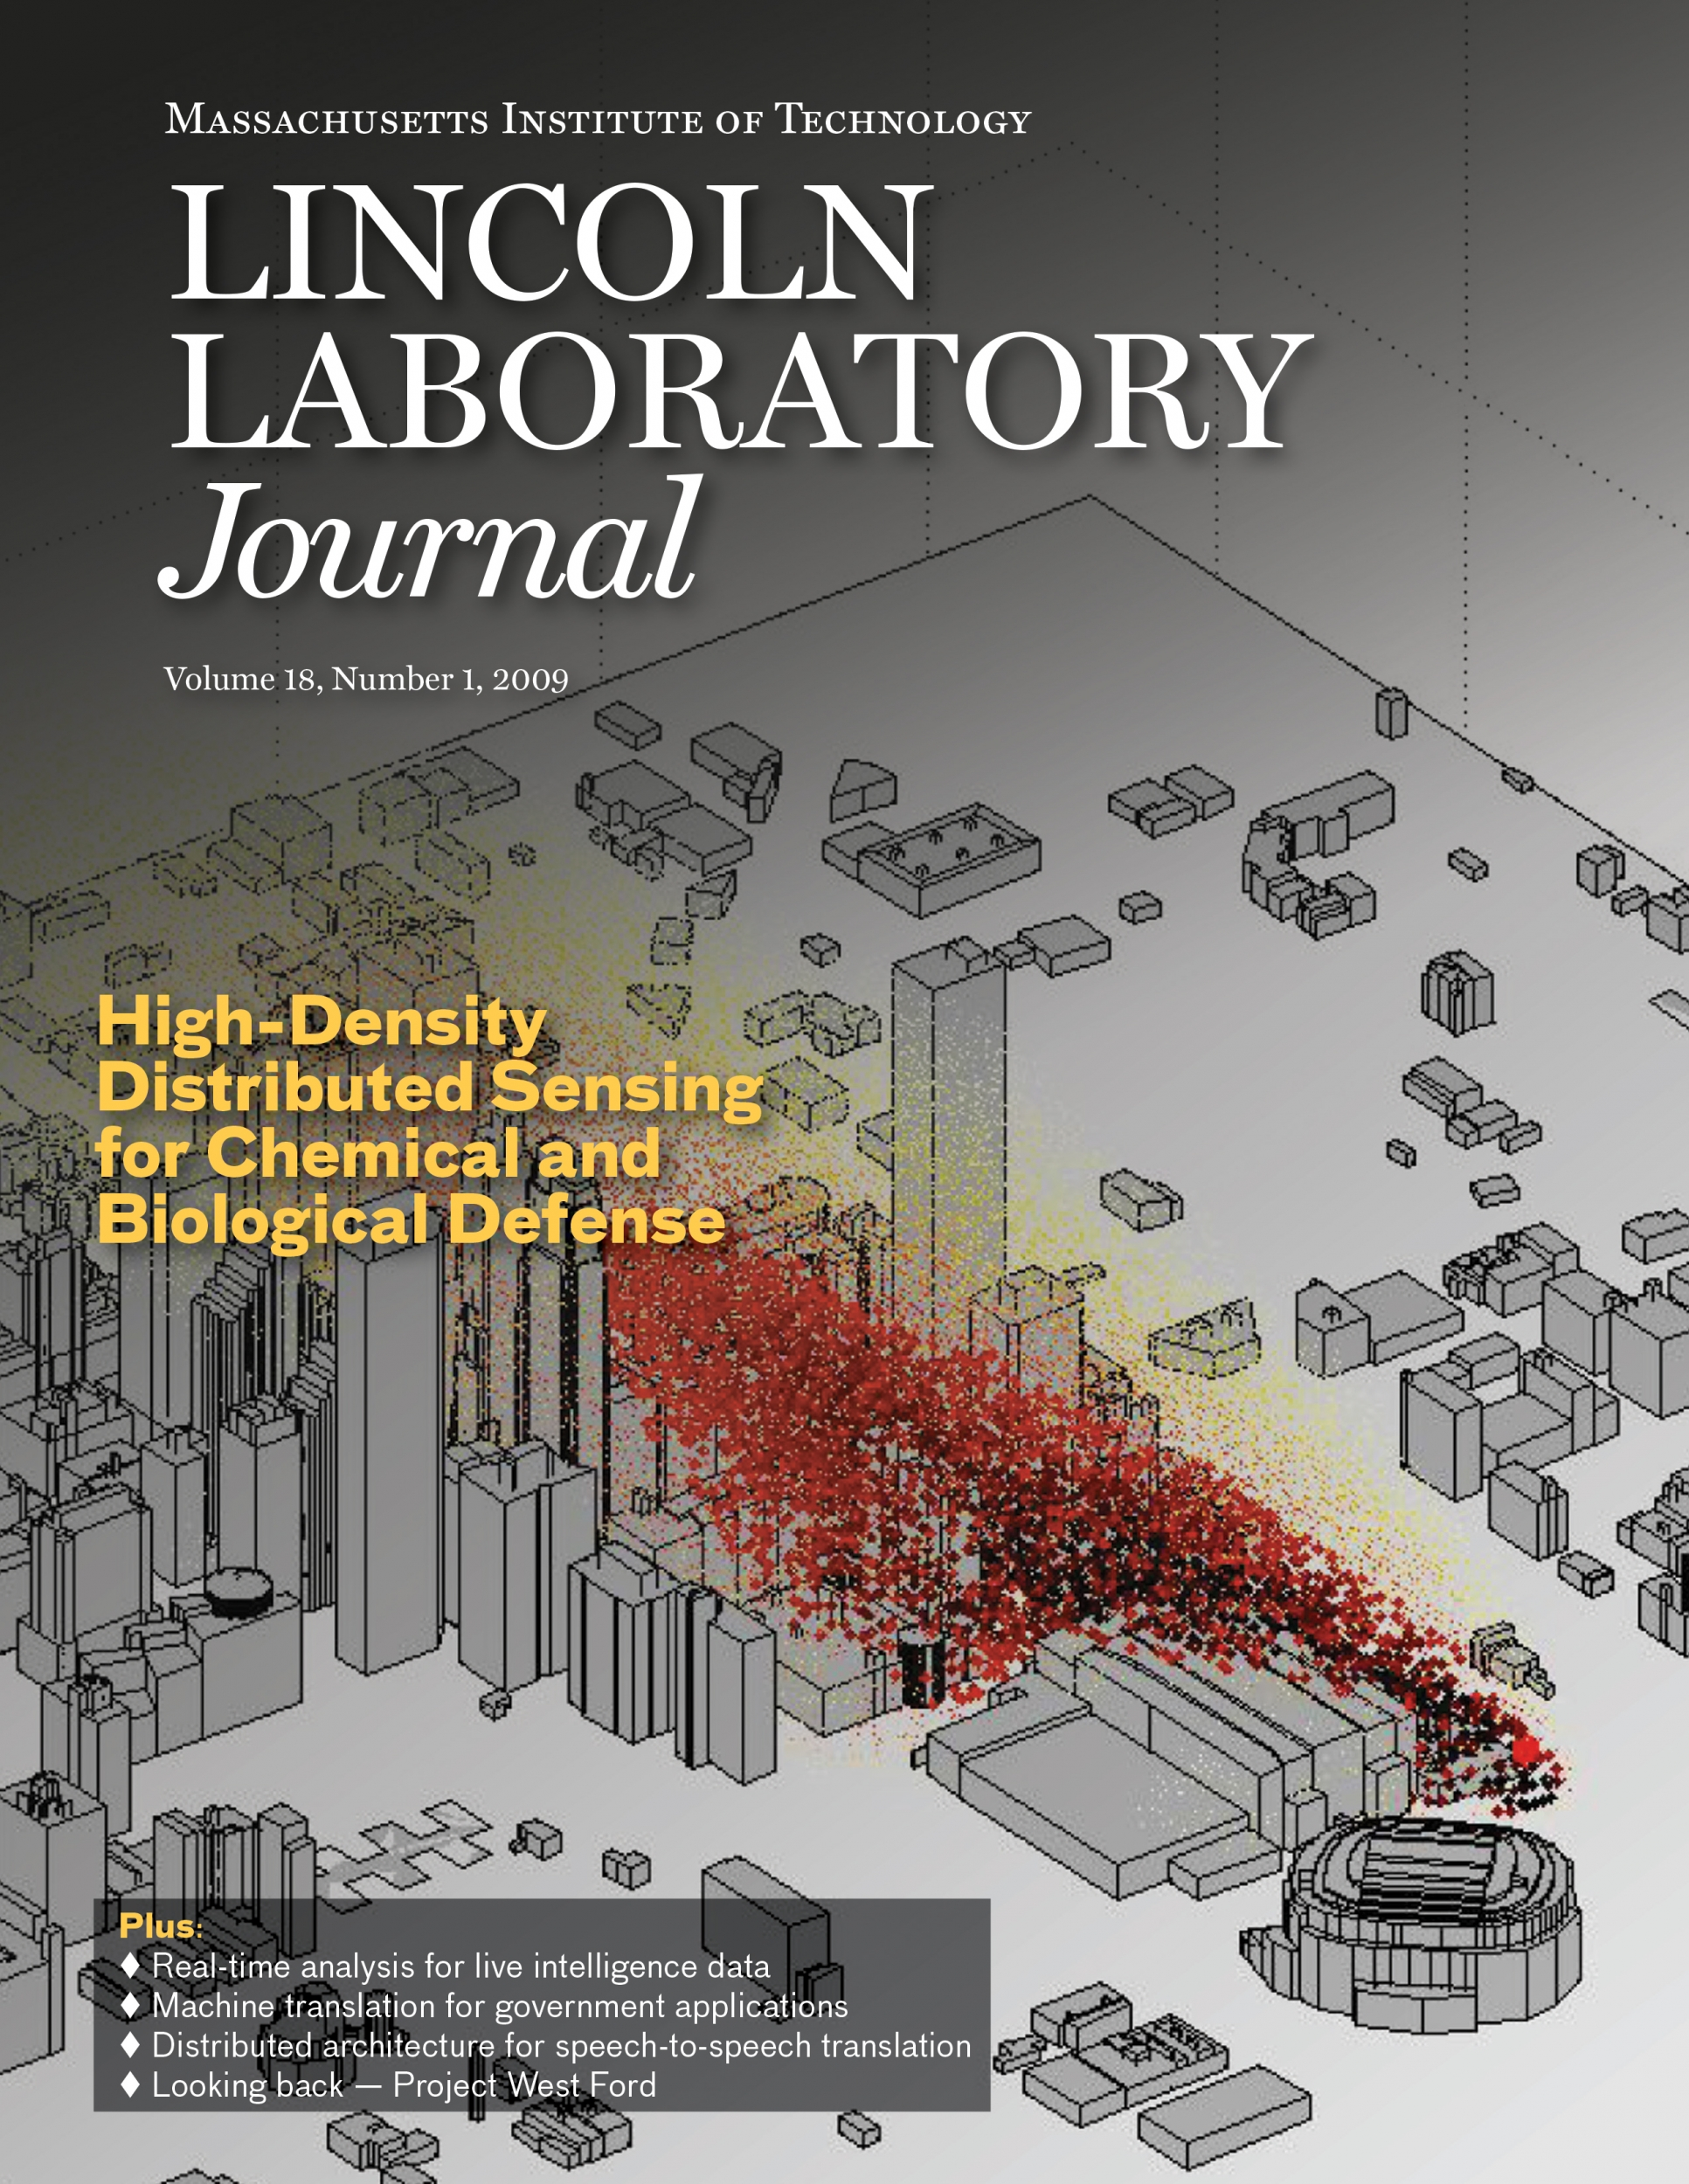 Lincoln Laboratory Journal Volume 18, Number 1